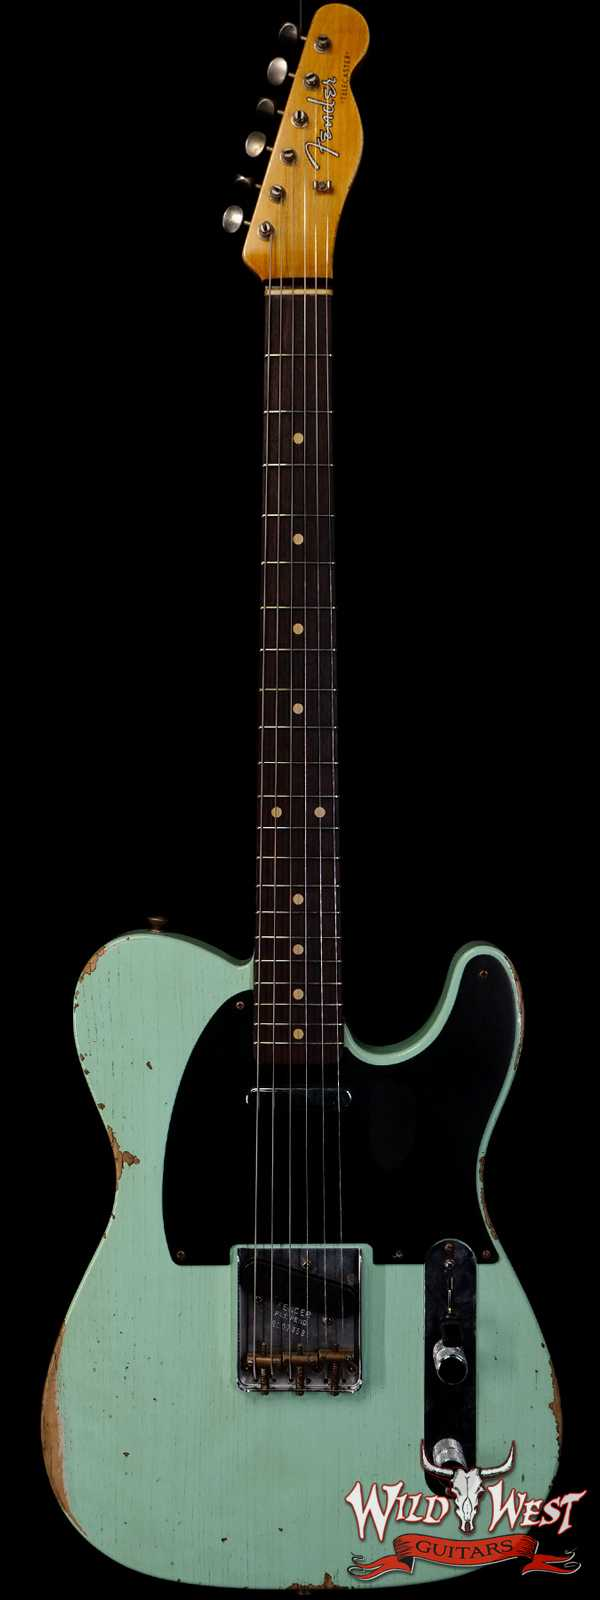 Fender Custom Shop 1961 Telecaster Relic Quater-Sawn Maple AAA Rosewood Fingerboard Surf Green